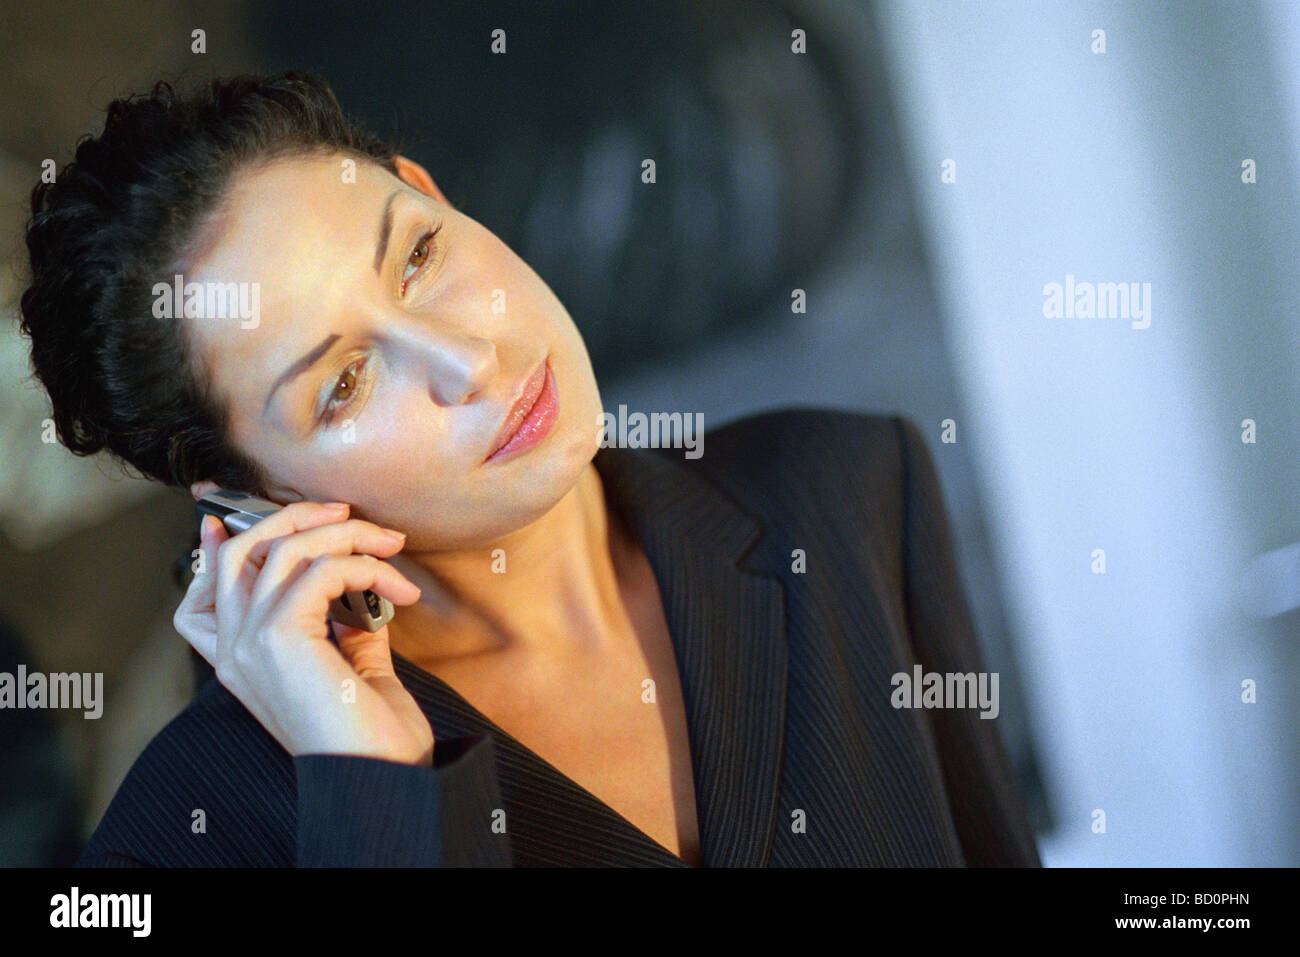 Young businesswoman using cell phone, looking away dreamily - Stock Image